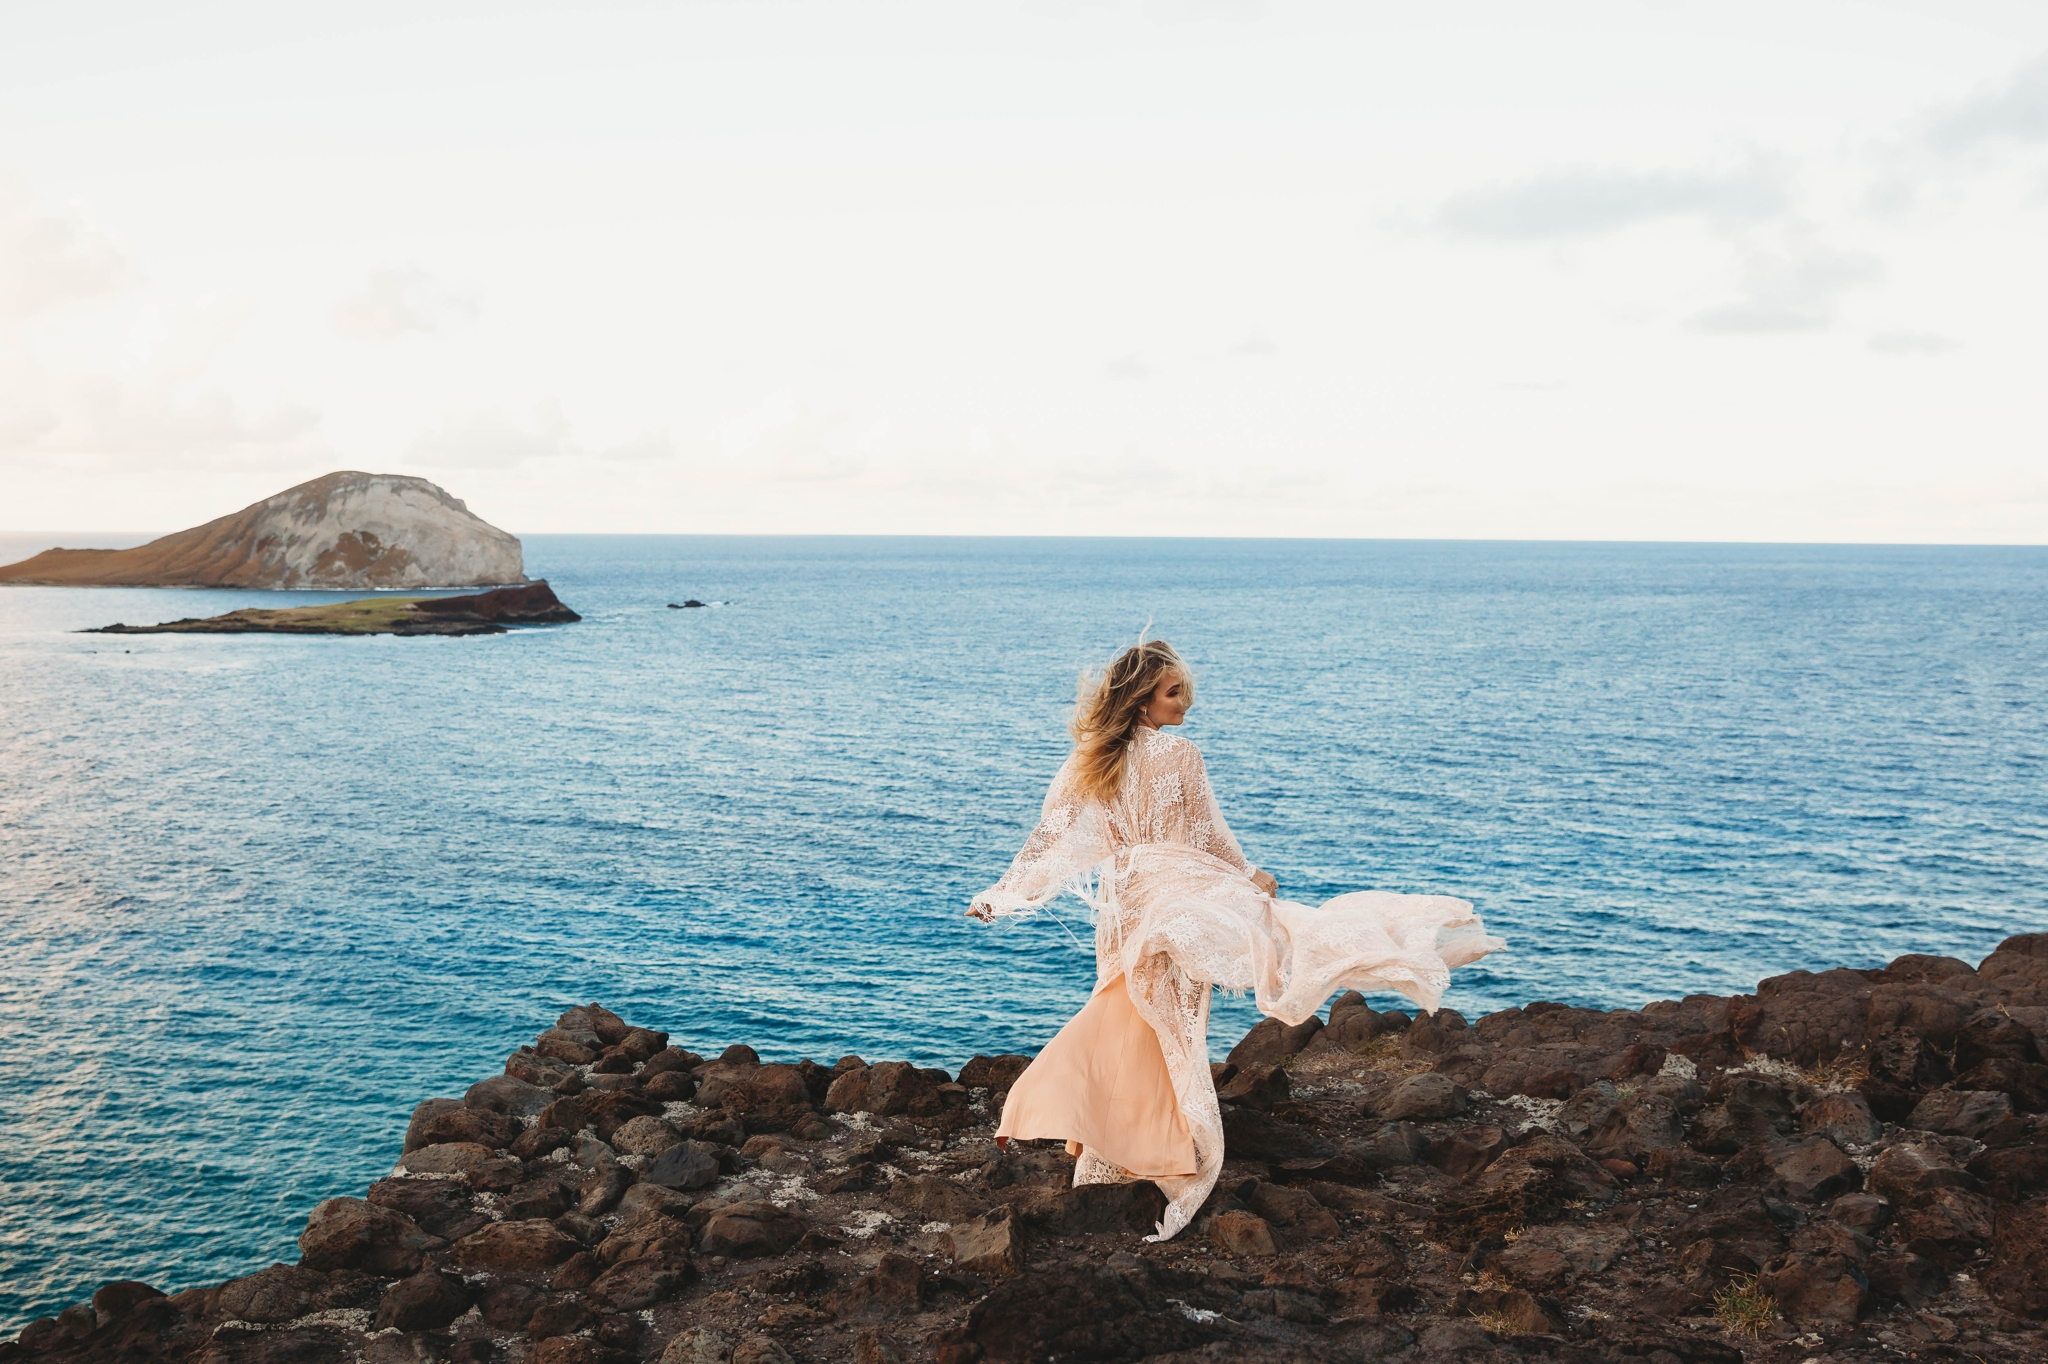 Bride in a flowy fringe boho wedding dress on the cliffs above Makapuu Beach at the Lookout, Waimanalo, HI looking over the ocean with the  Kāohikaipu Island in the background  - Oahu Hawaii Engagement Photographer - lanikai lookout - deutsche hochzeits fotografin in hawaii - smal1 - dark and moody - true to live